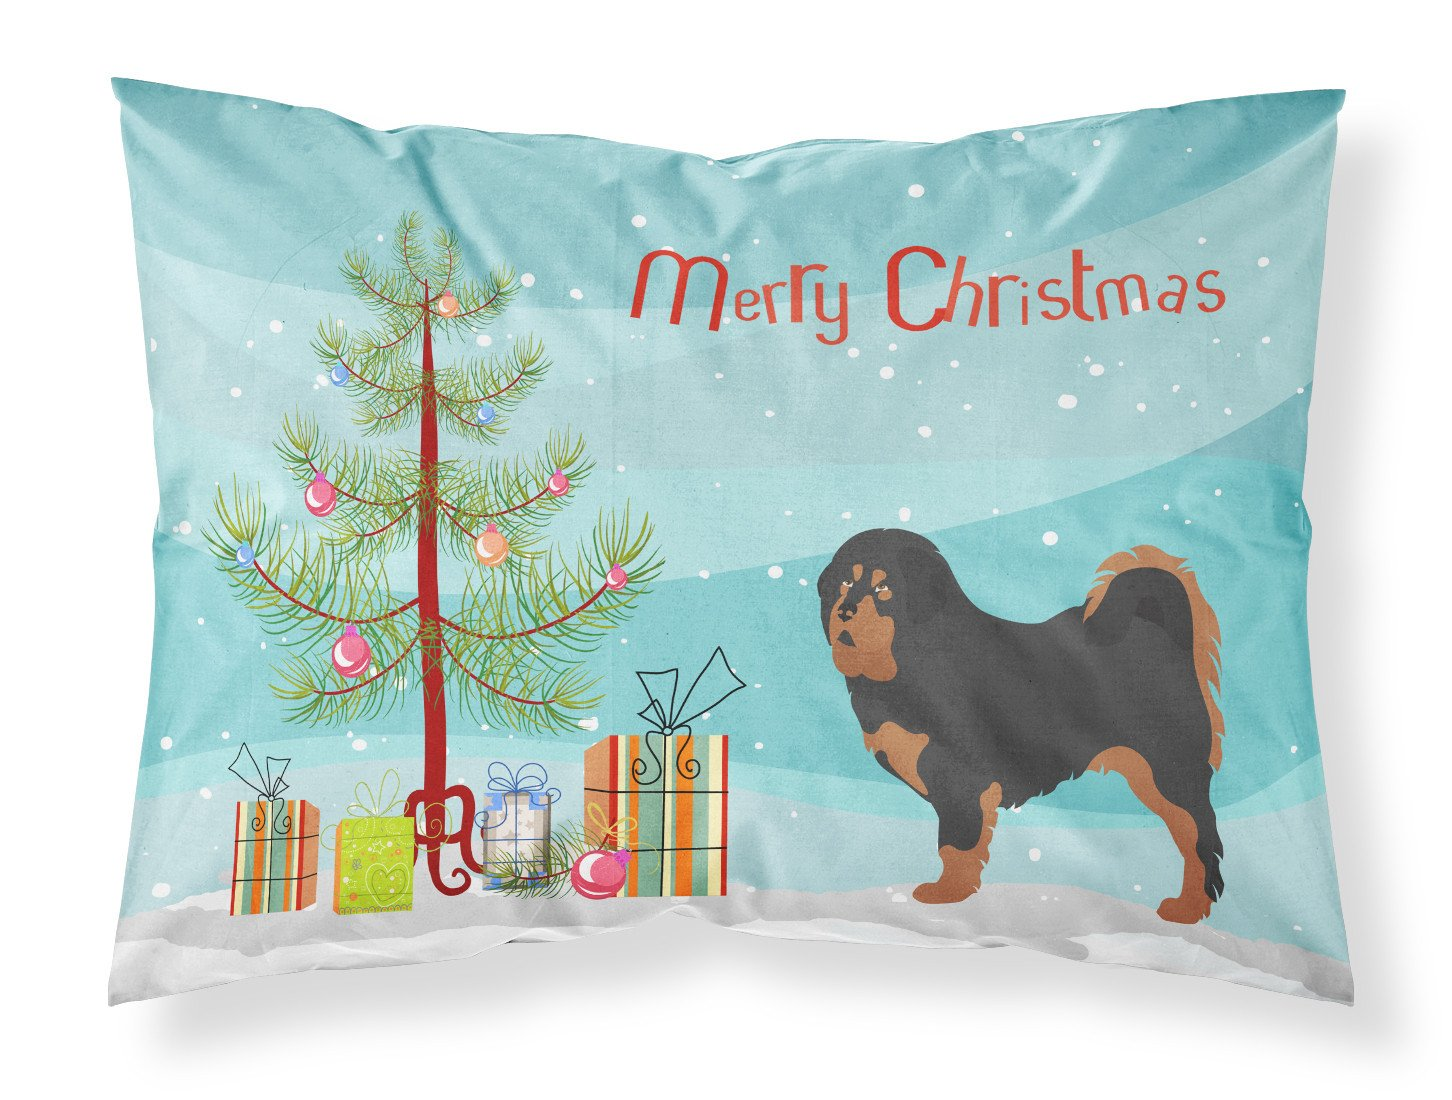 Tibetan Mastiff Christmas Fabric Standard Pillowcase BB8488PILLOWCASE by Caroline's Treasures